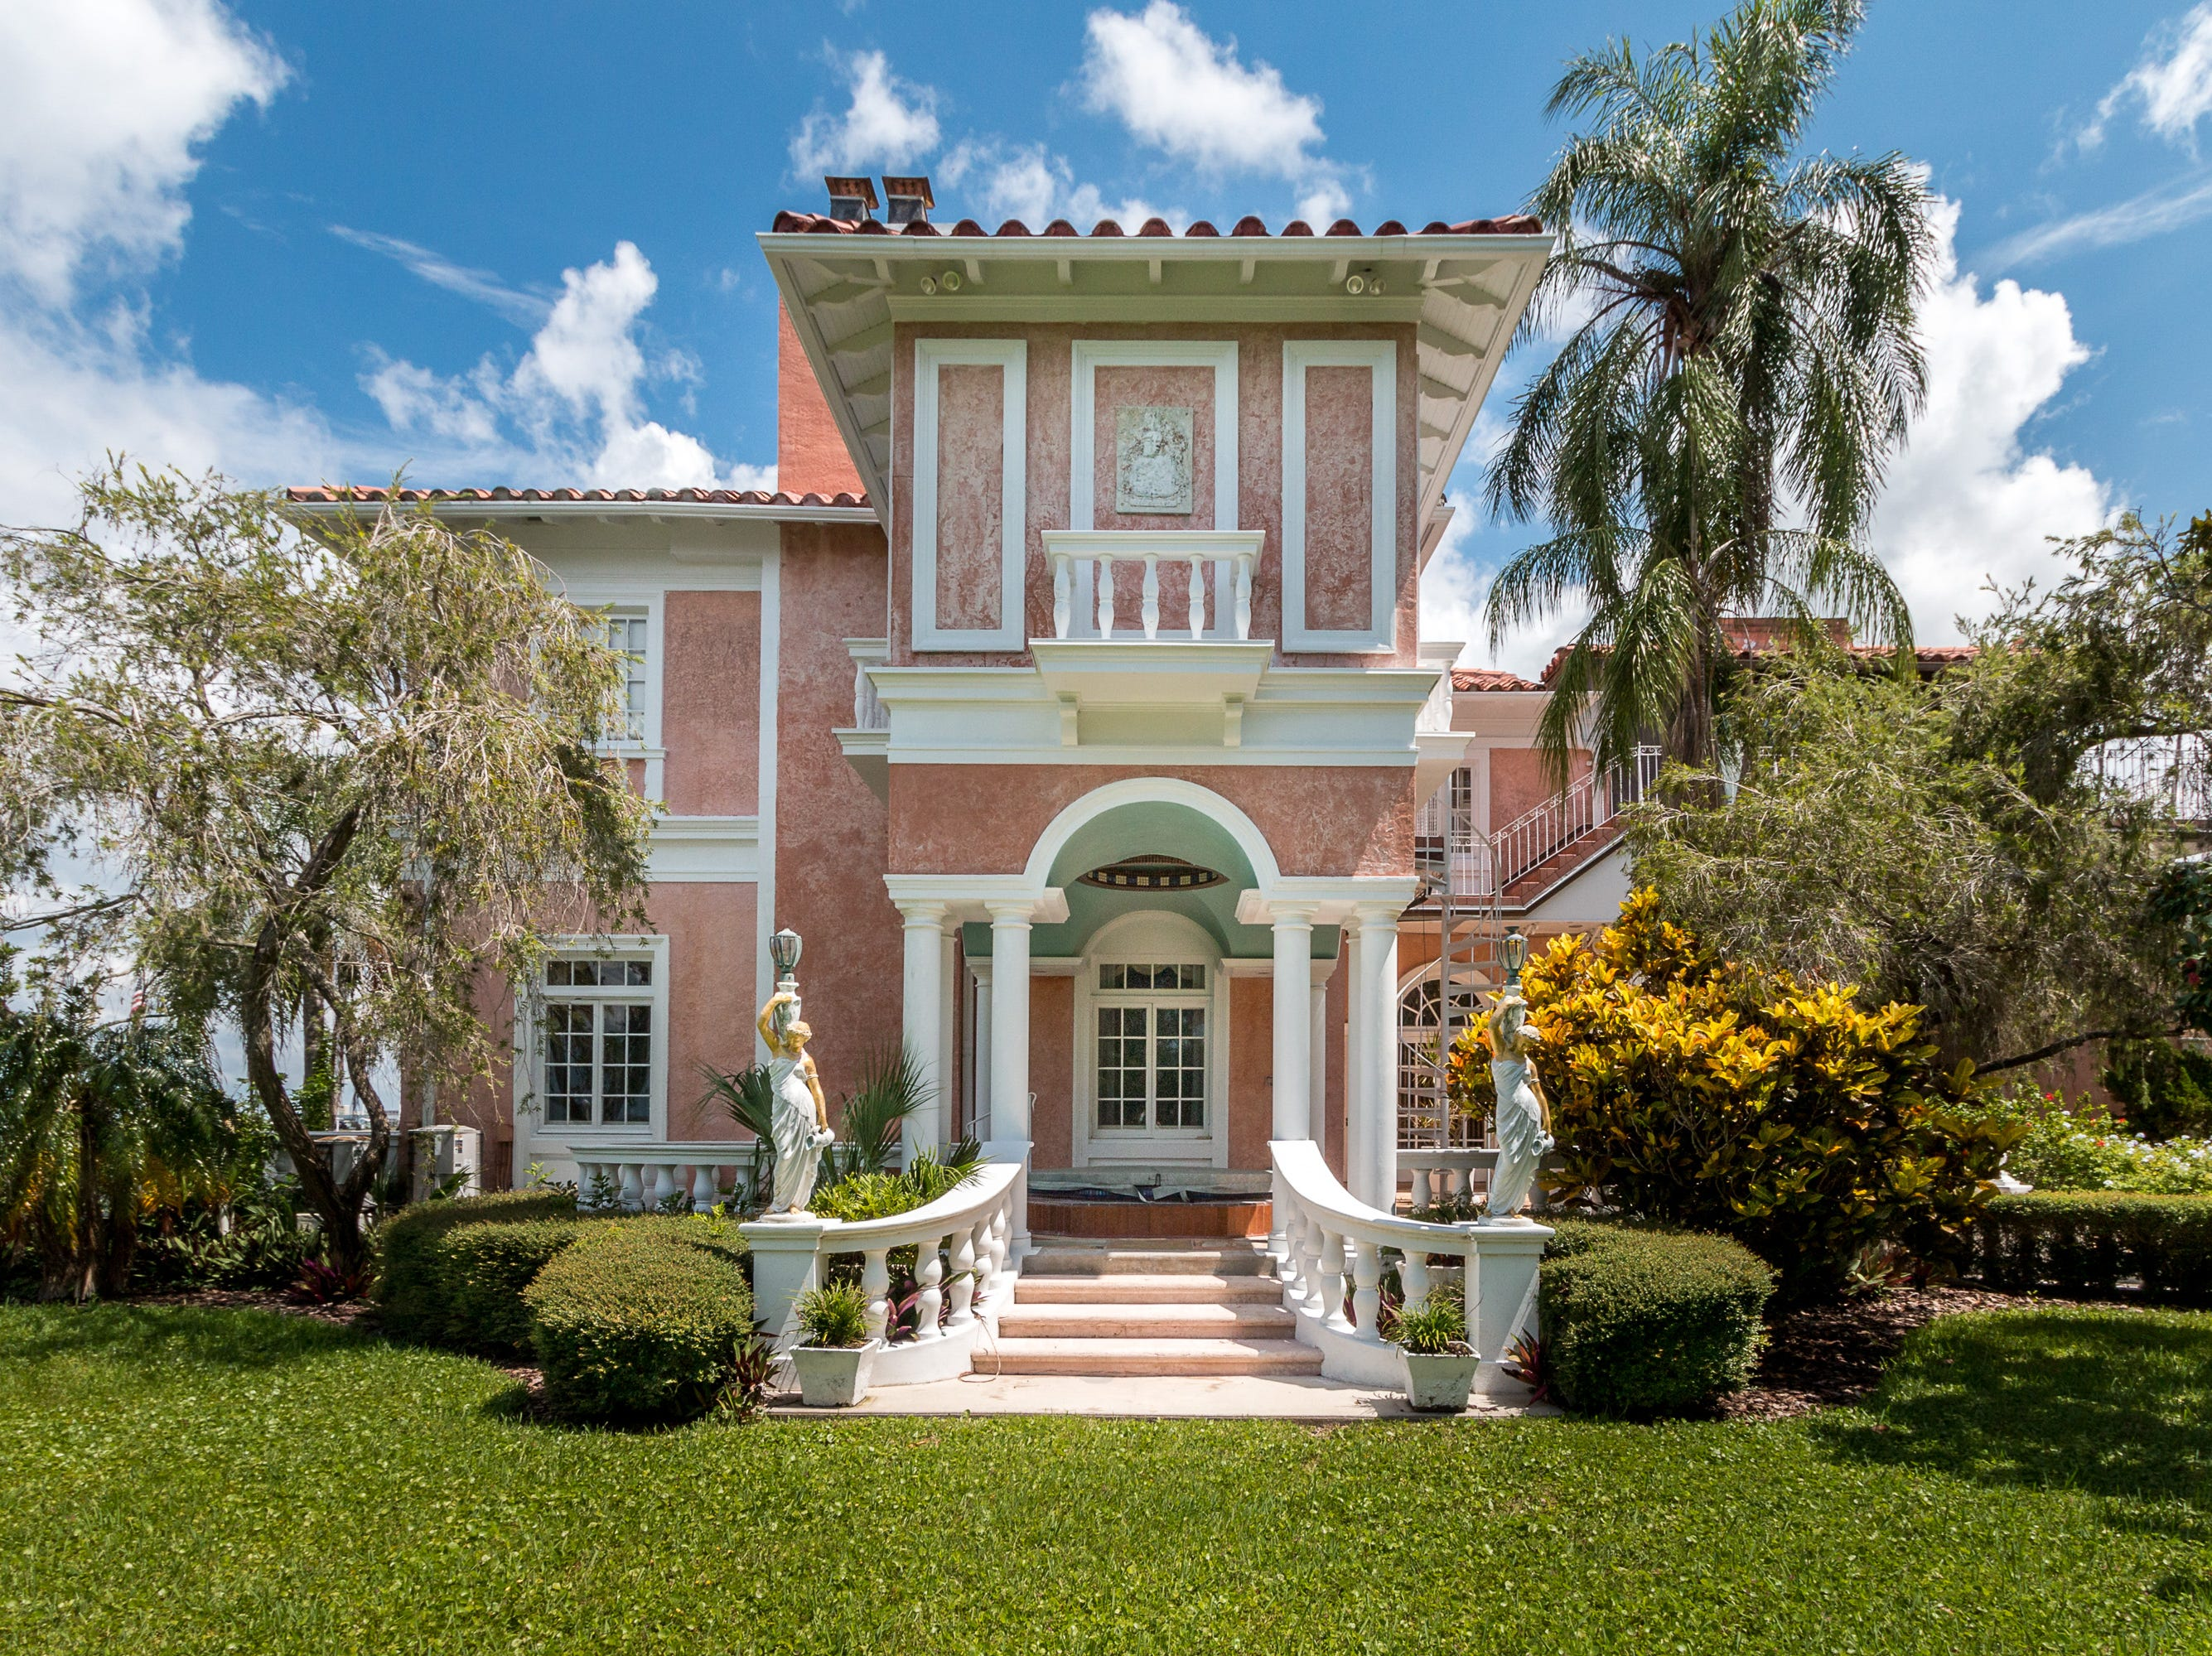 This mansion in Dunedin, Florida, was built in 1925. In 1934, W.K. Kellogg and his wife Carrie bought it.